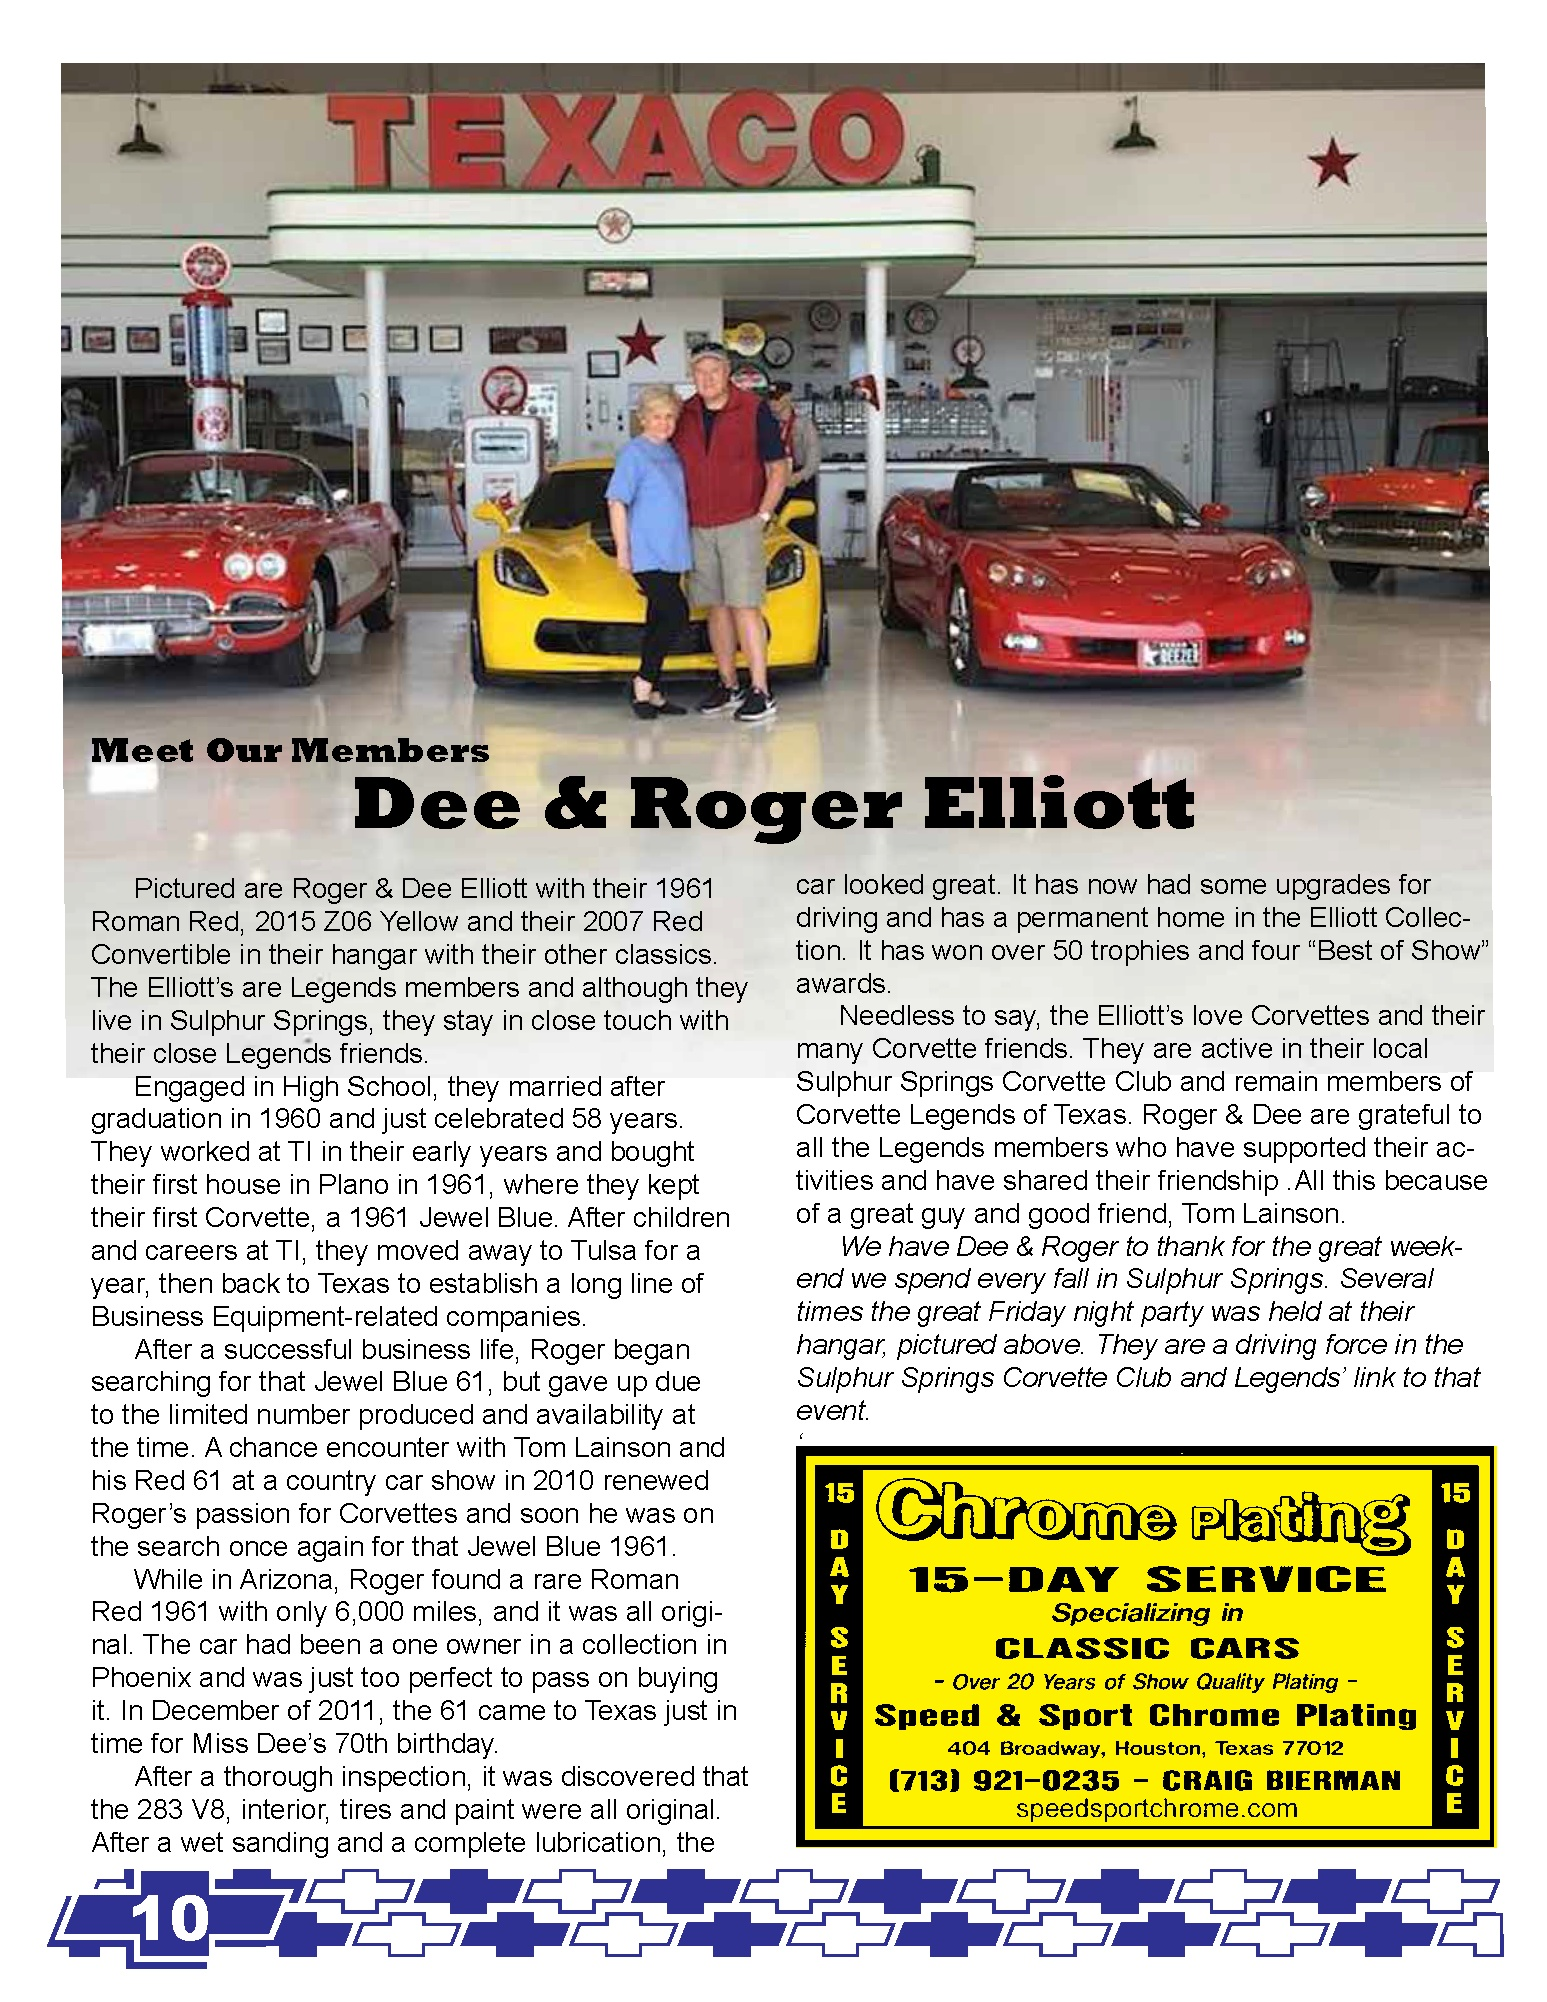 https://0201.nccdn.net/1_2/000/000/0b0/f84/Corvette-Legends-of-Texas-Newsletter-1-19c_Page_10-1547x2002.jpg